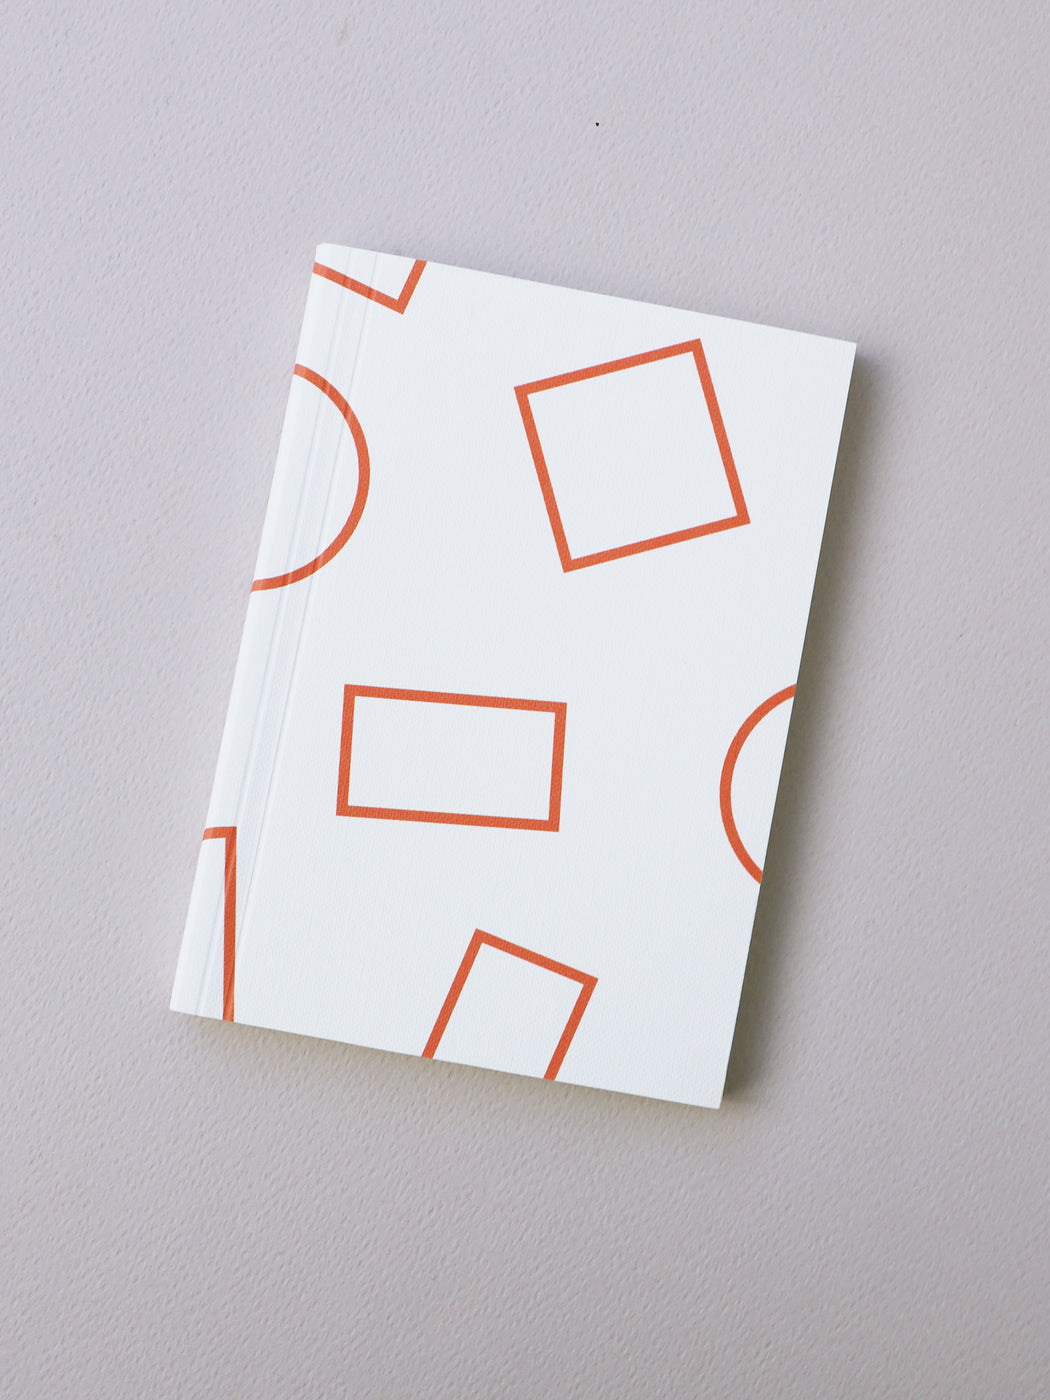 A6 Notebook in Orange Shapes Print